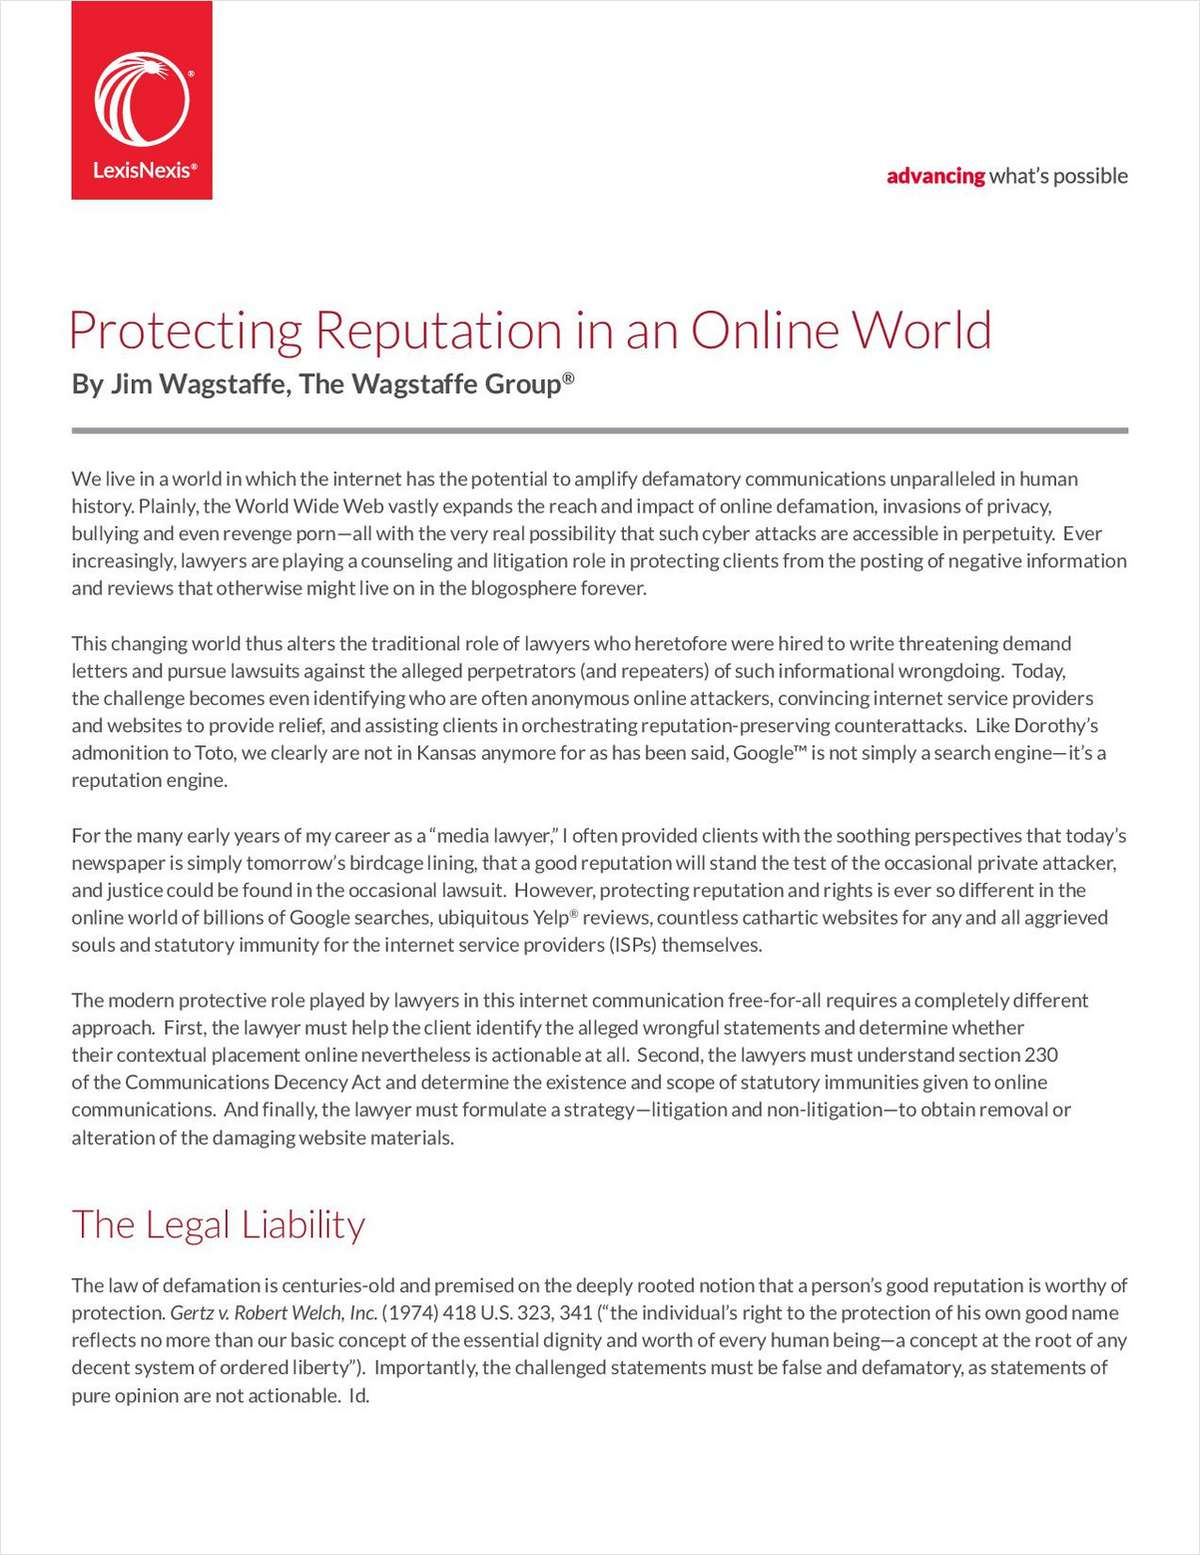 A Modern Approach to Protect Client Reputations Online